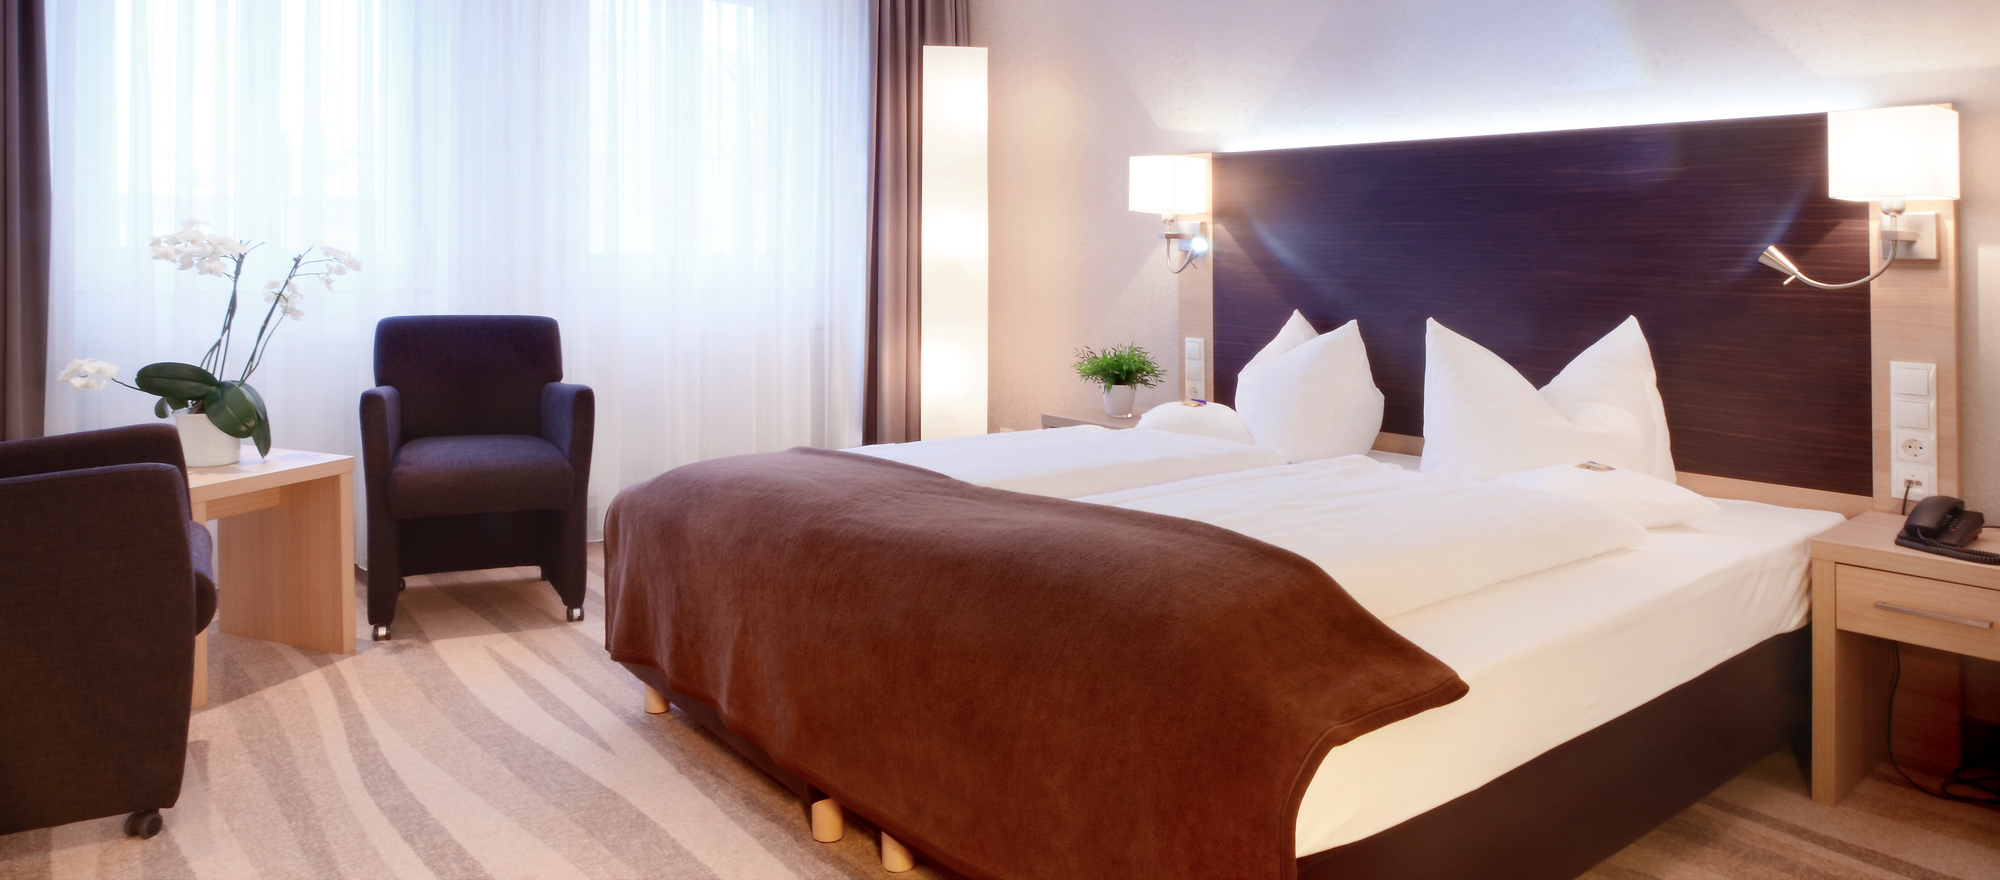 Modern tasteful designed comfort rooms at the 4-star hotel Ringhotel Loew´s Merkur in Nuremberg